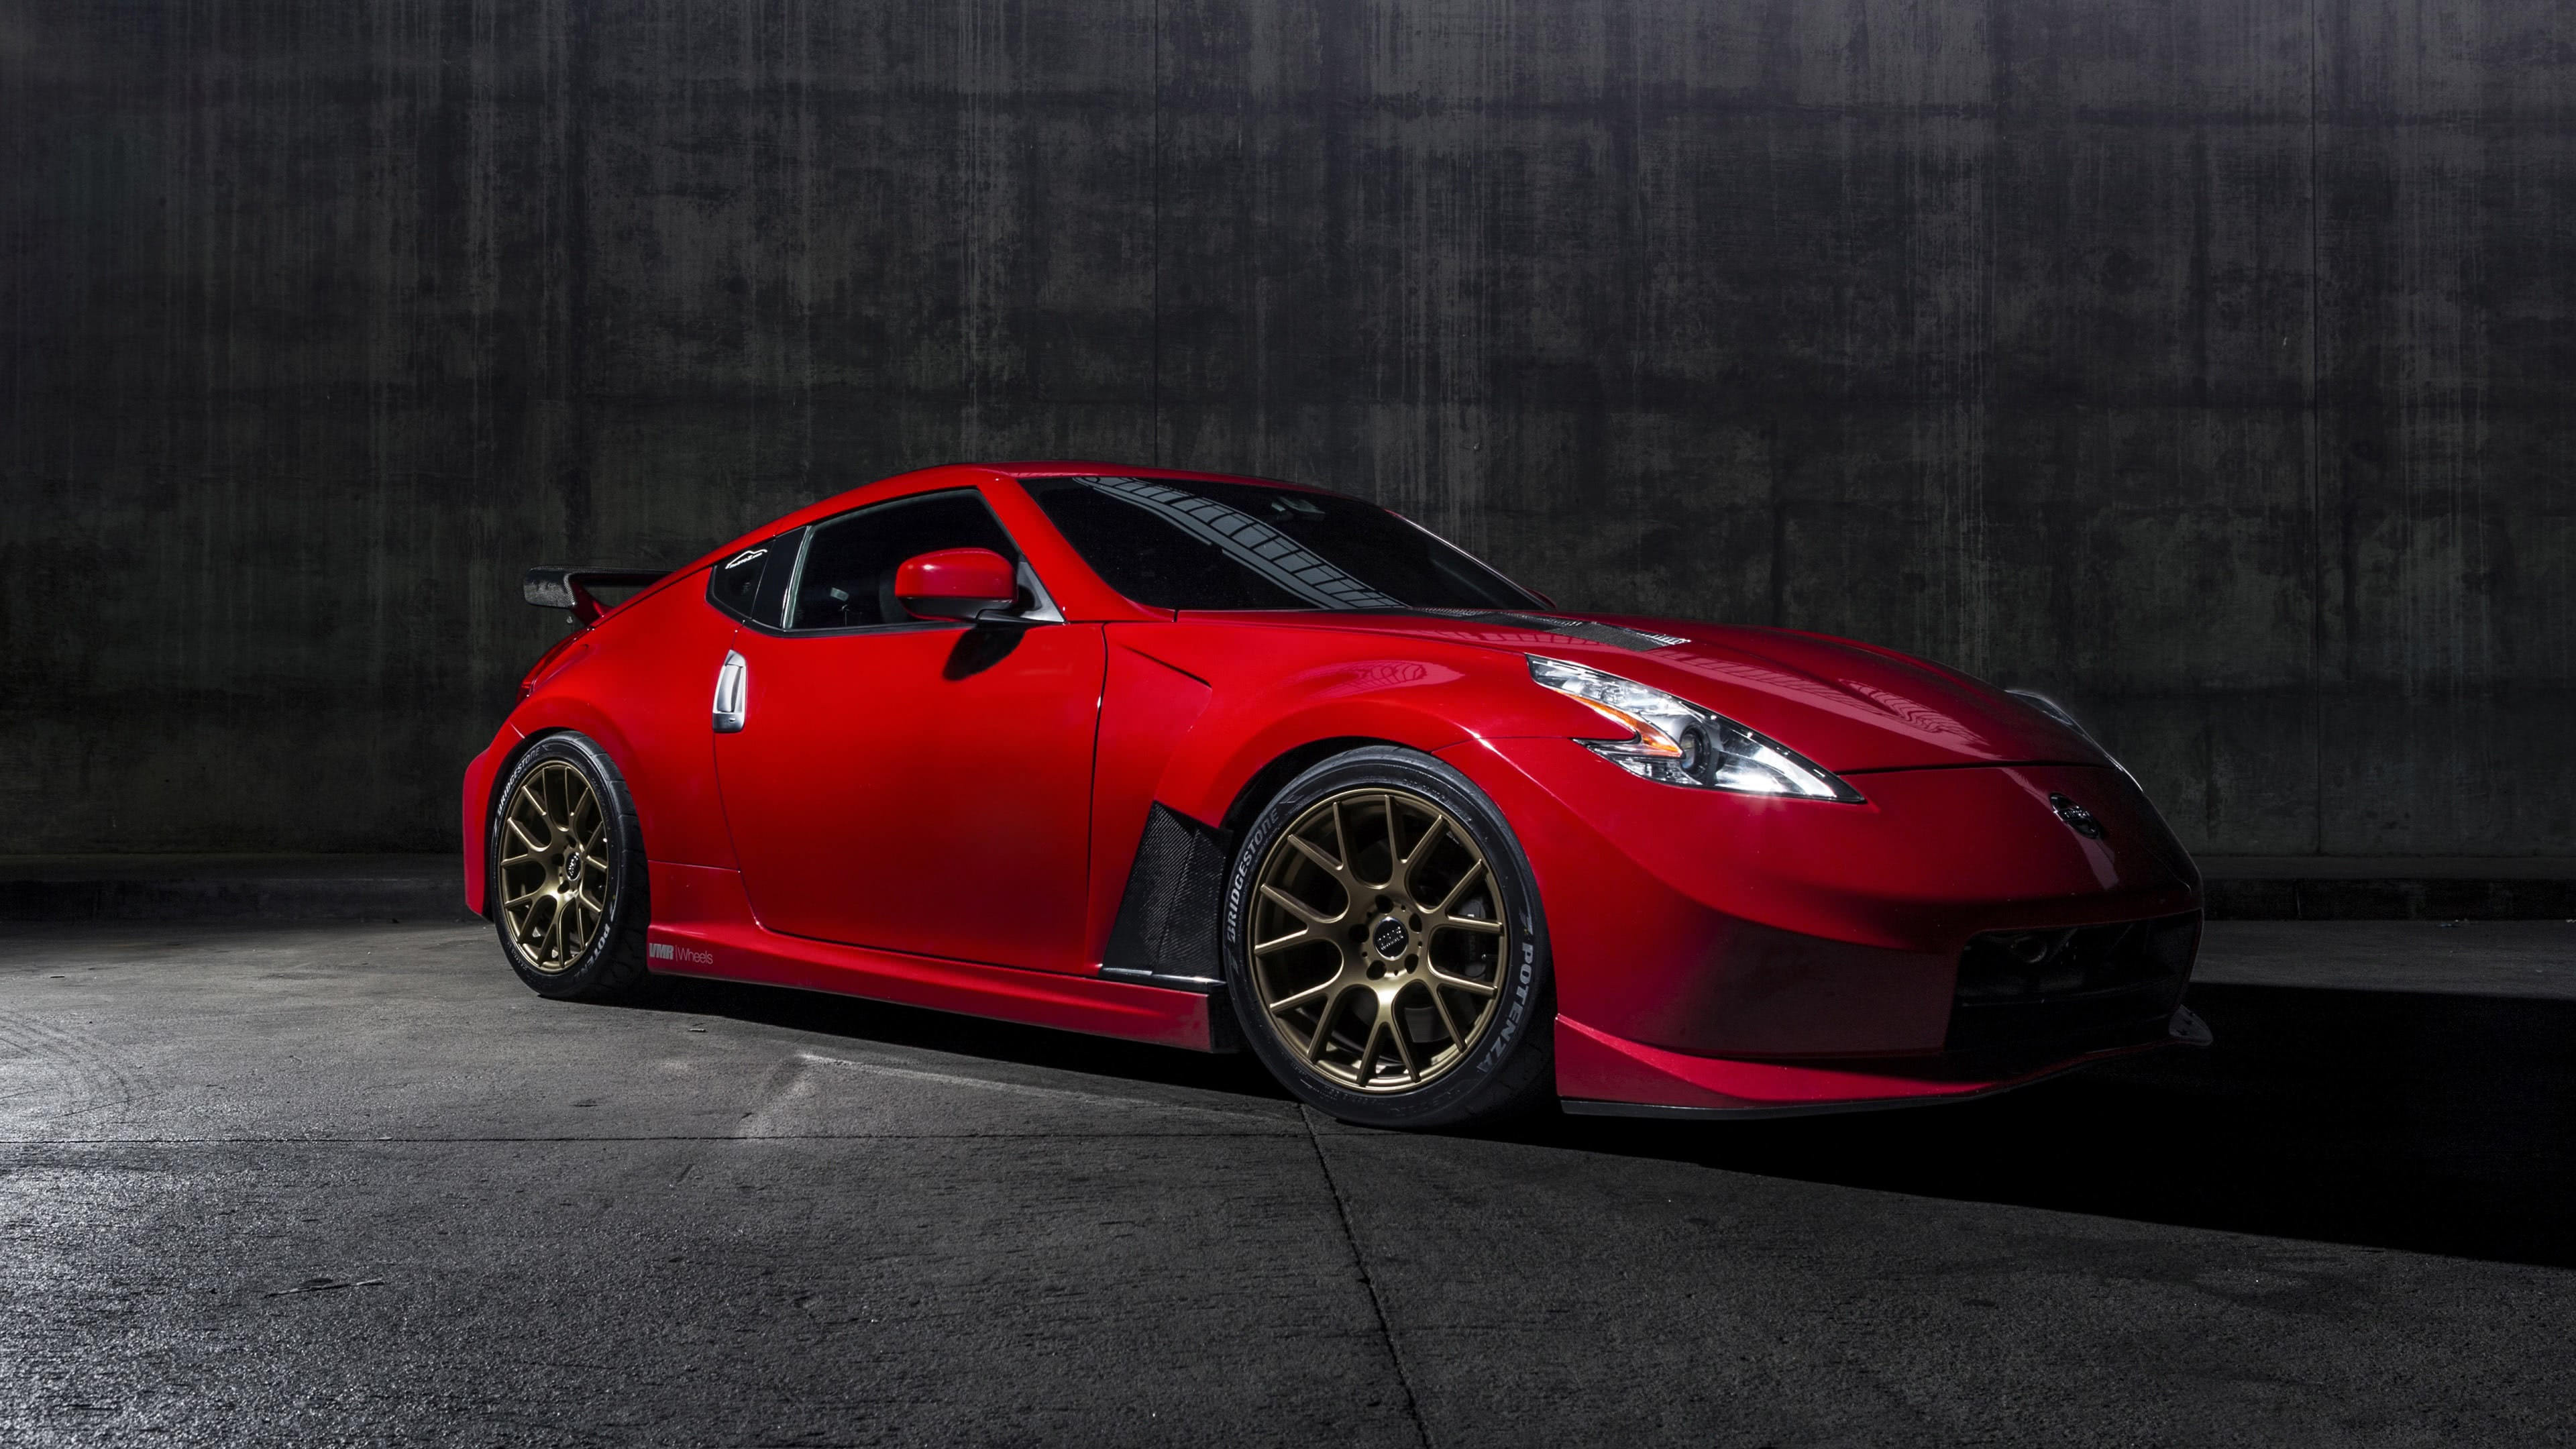 2017 nissan 370z coupe uhd 4k wallpaper